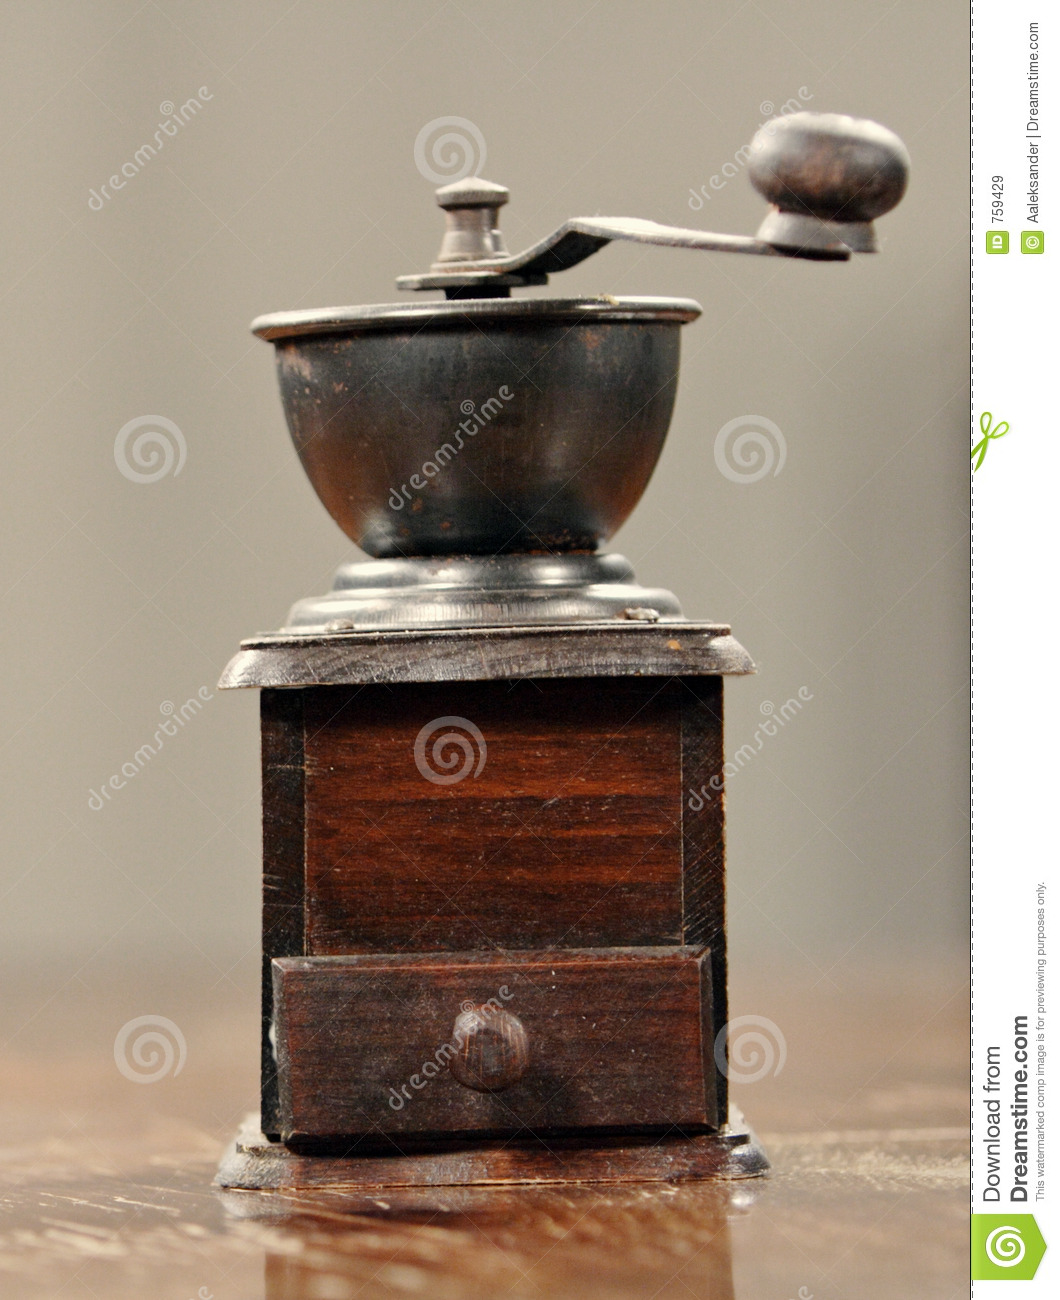 Pepper mill royalty free stock images image 759429 for Pepper mill plans